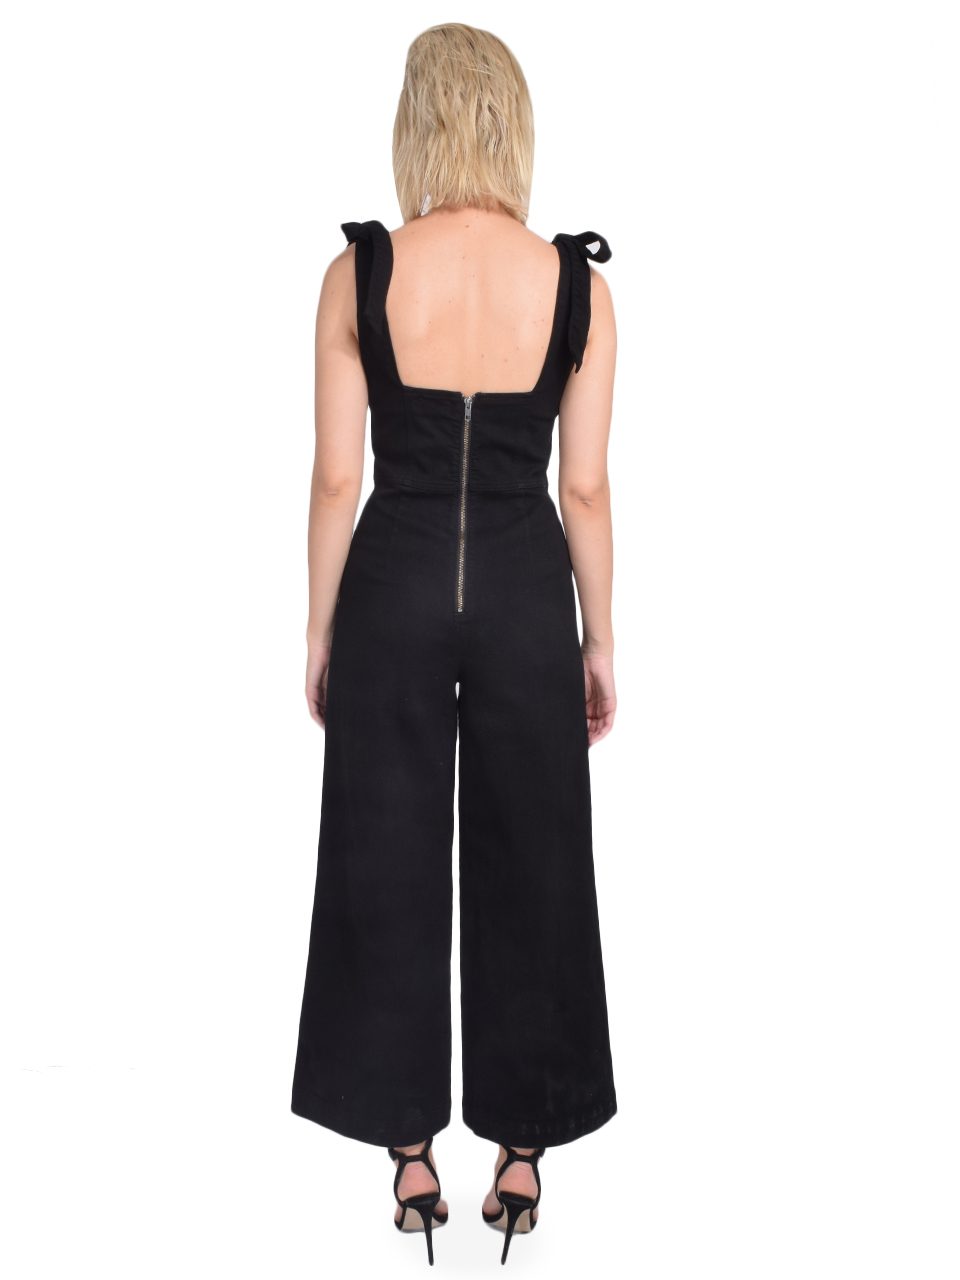 ALICE + OLIVIA Kinley Tie Shoulder Gaucho Jumpsuit in Night Fever Back View